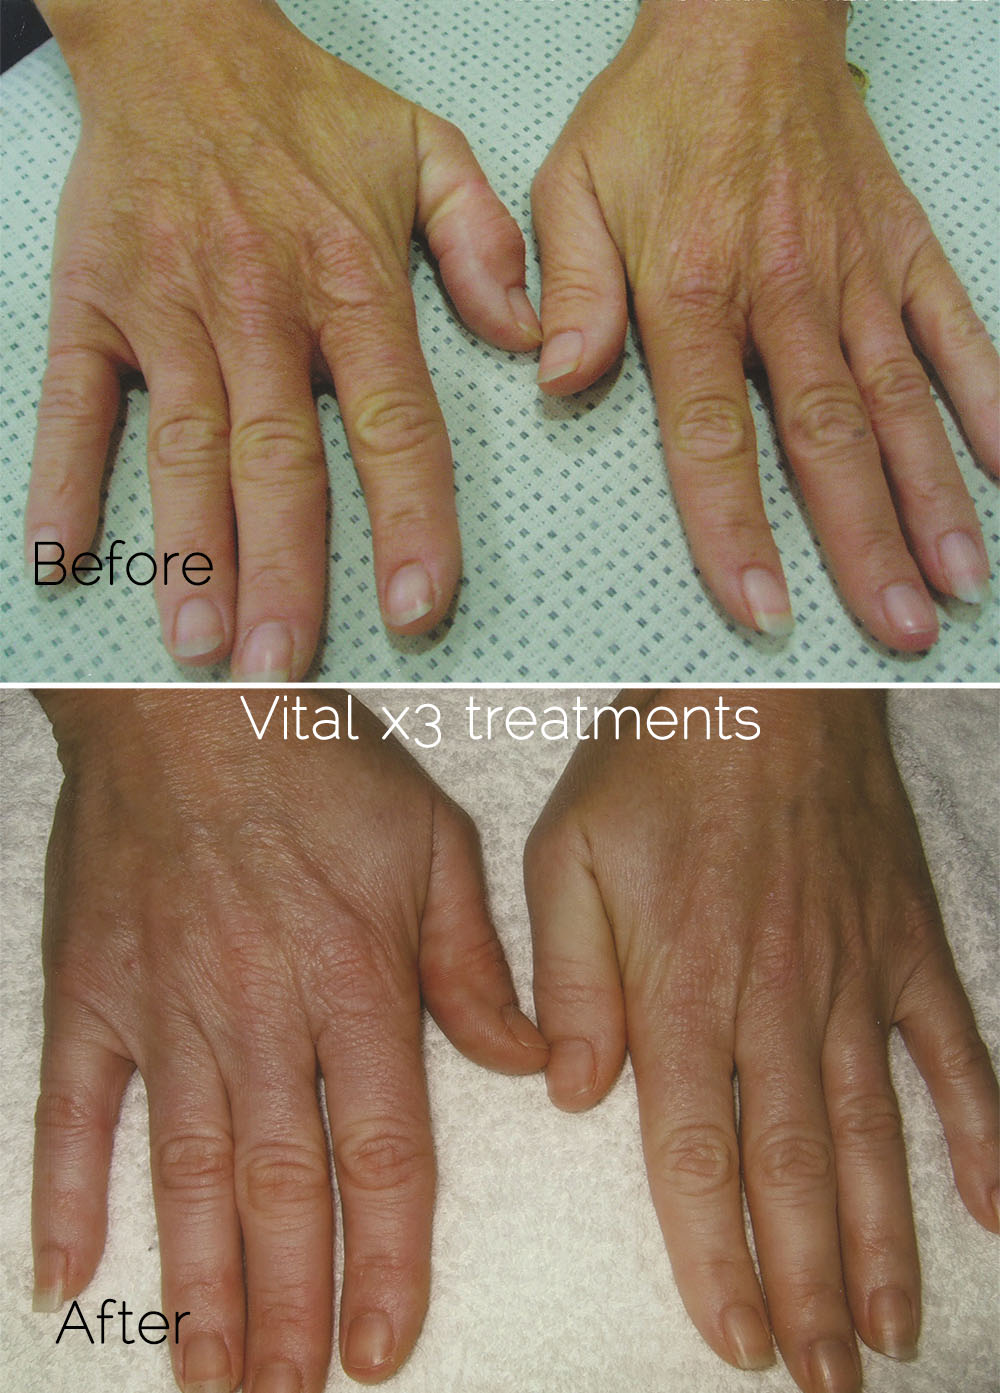 After Vital 3 treatment on hands